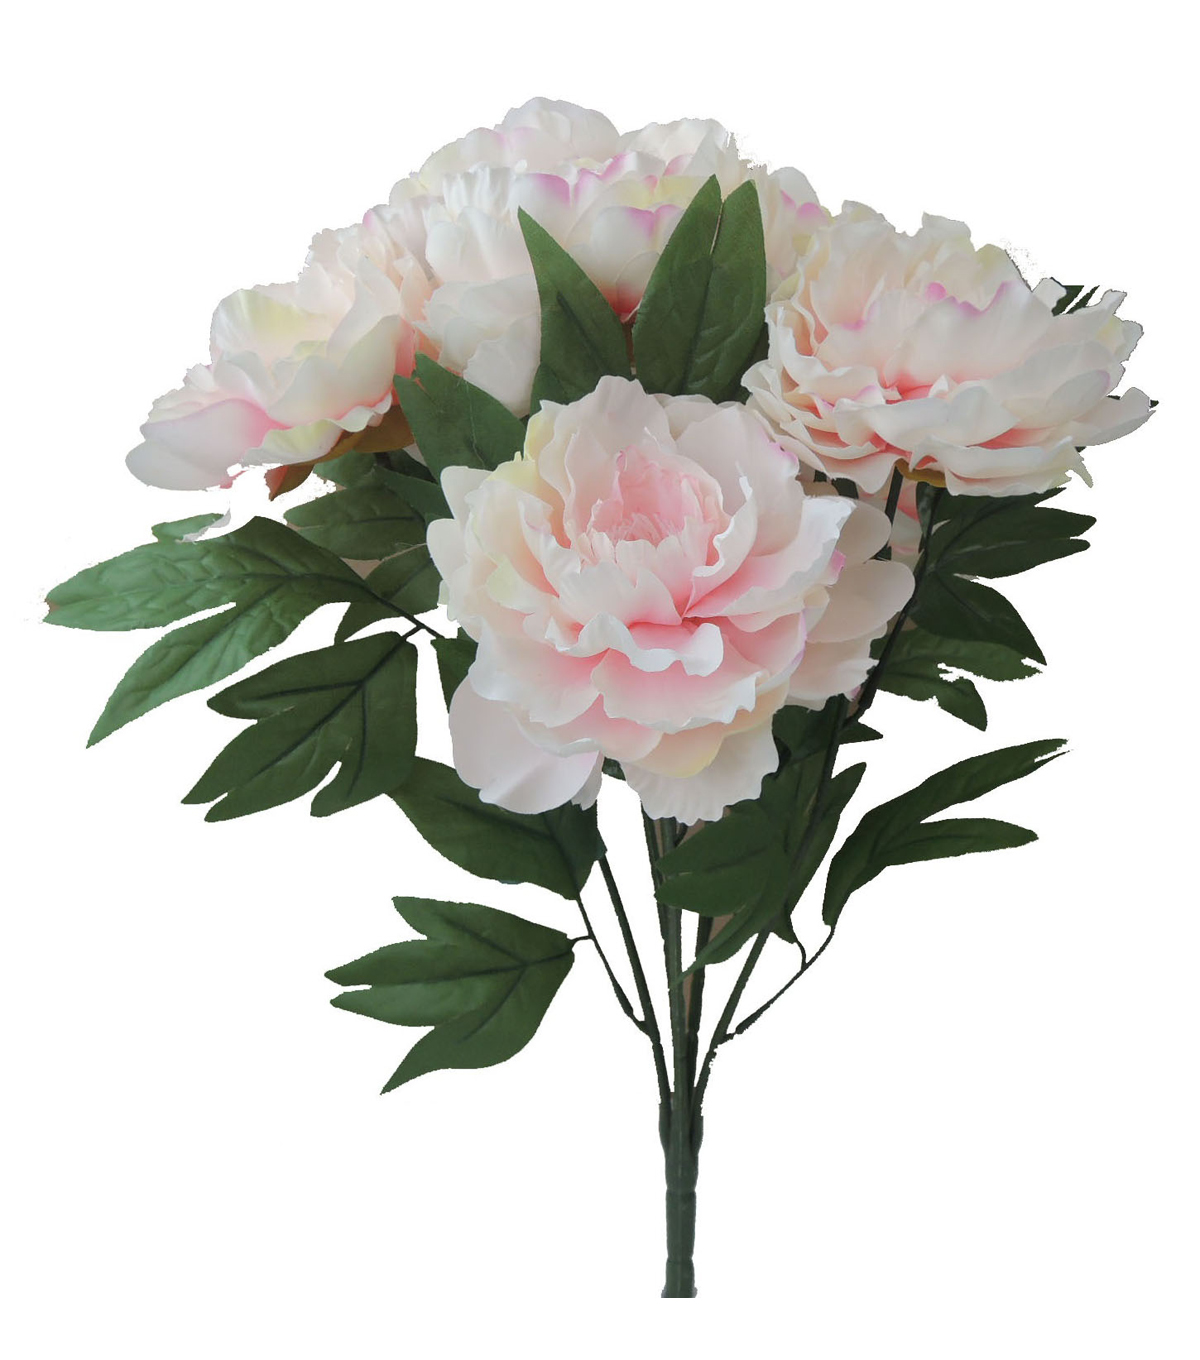 Pink Peony Bush By Bloom Room Joann